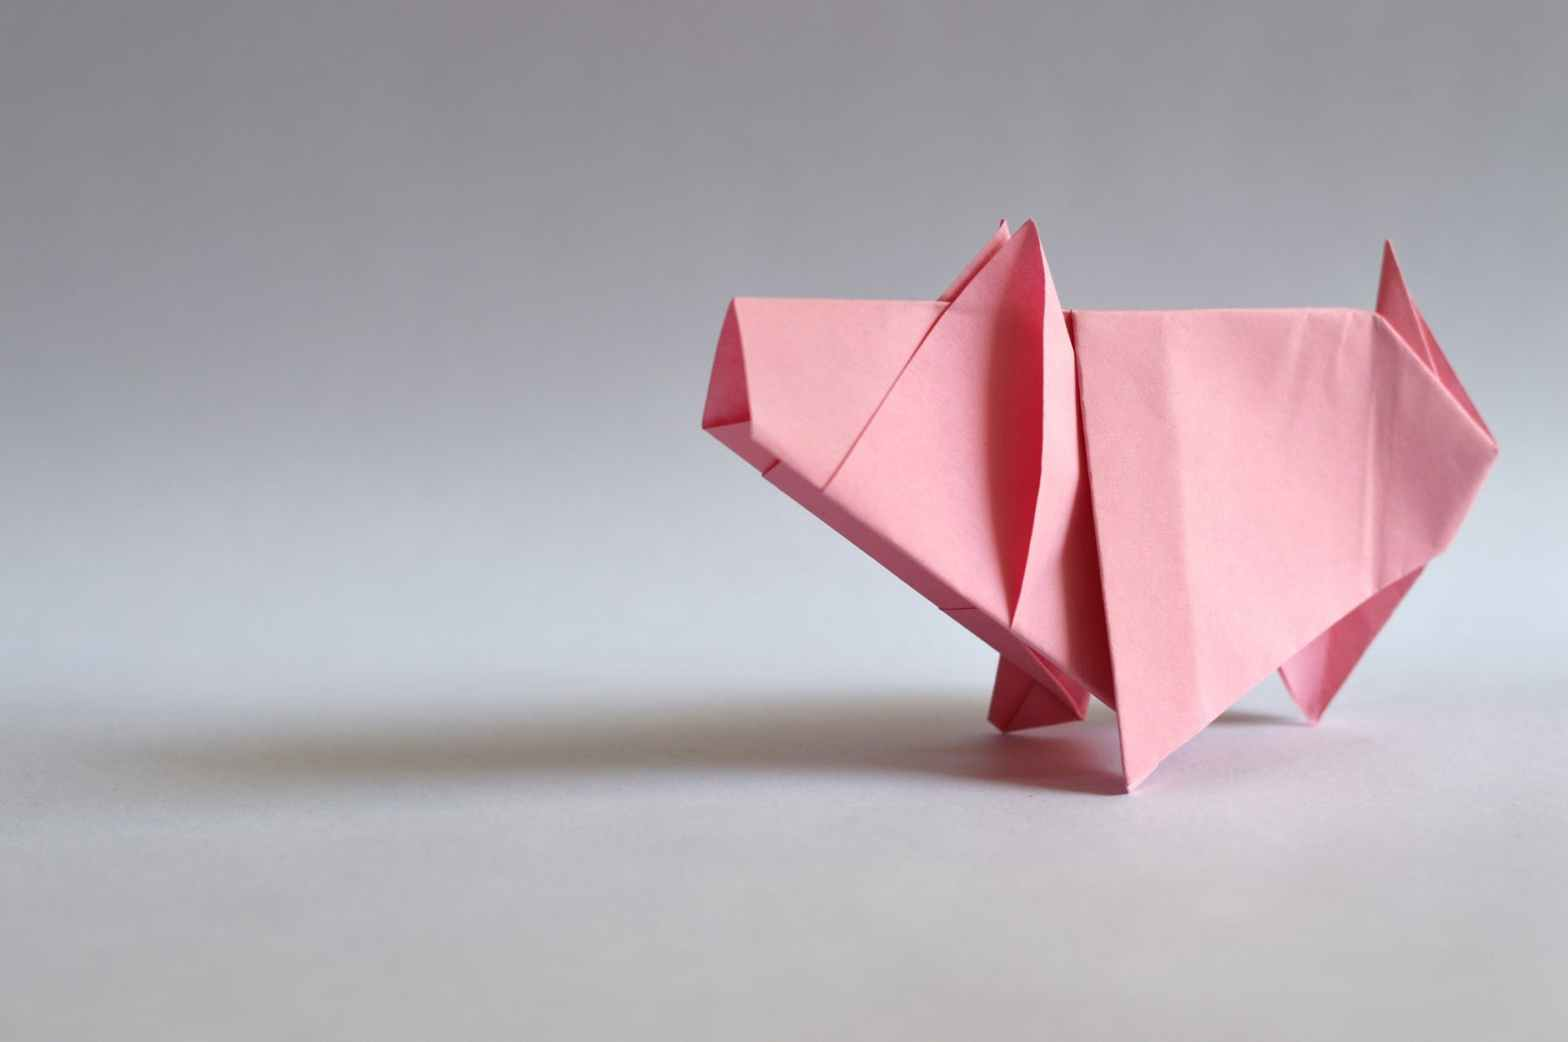 Origami pig folded with pink paper.